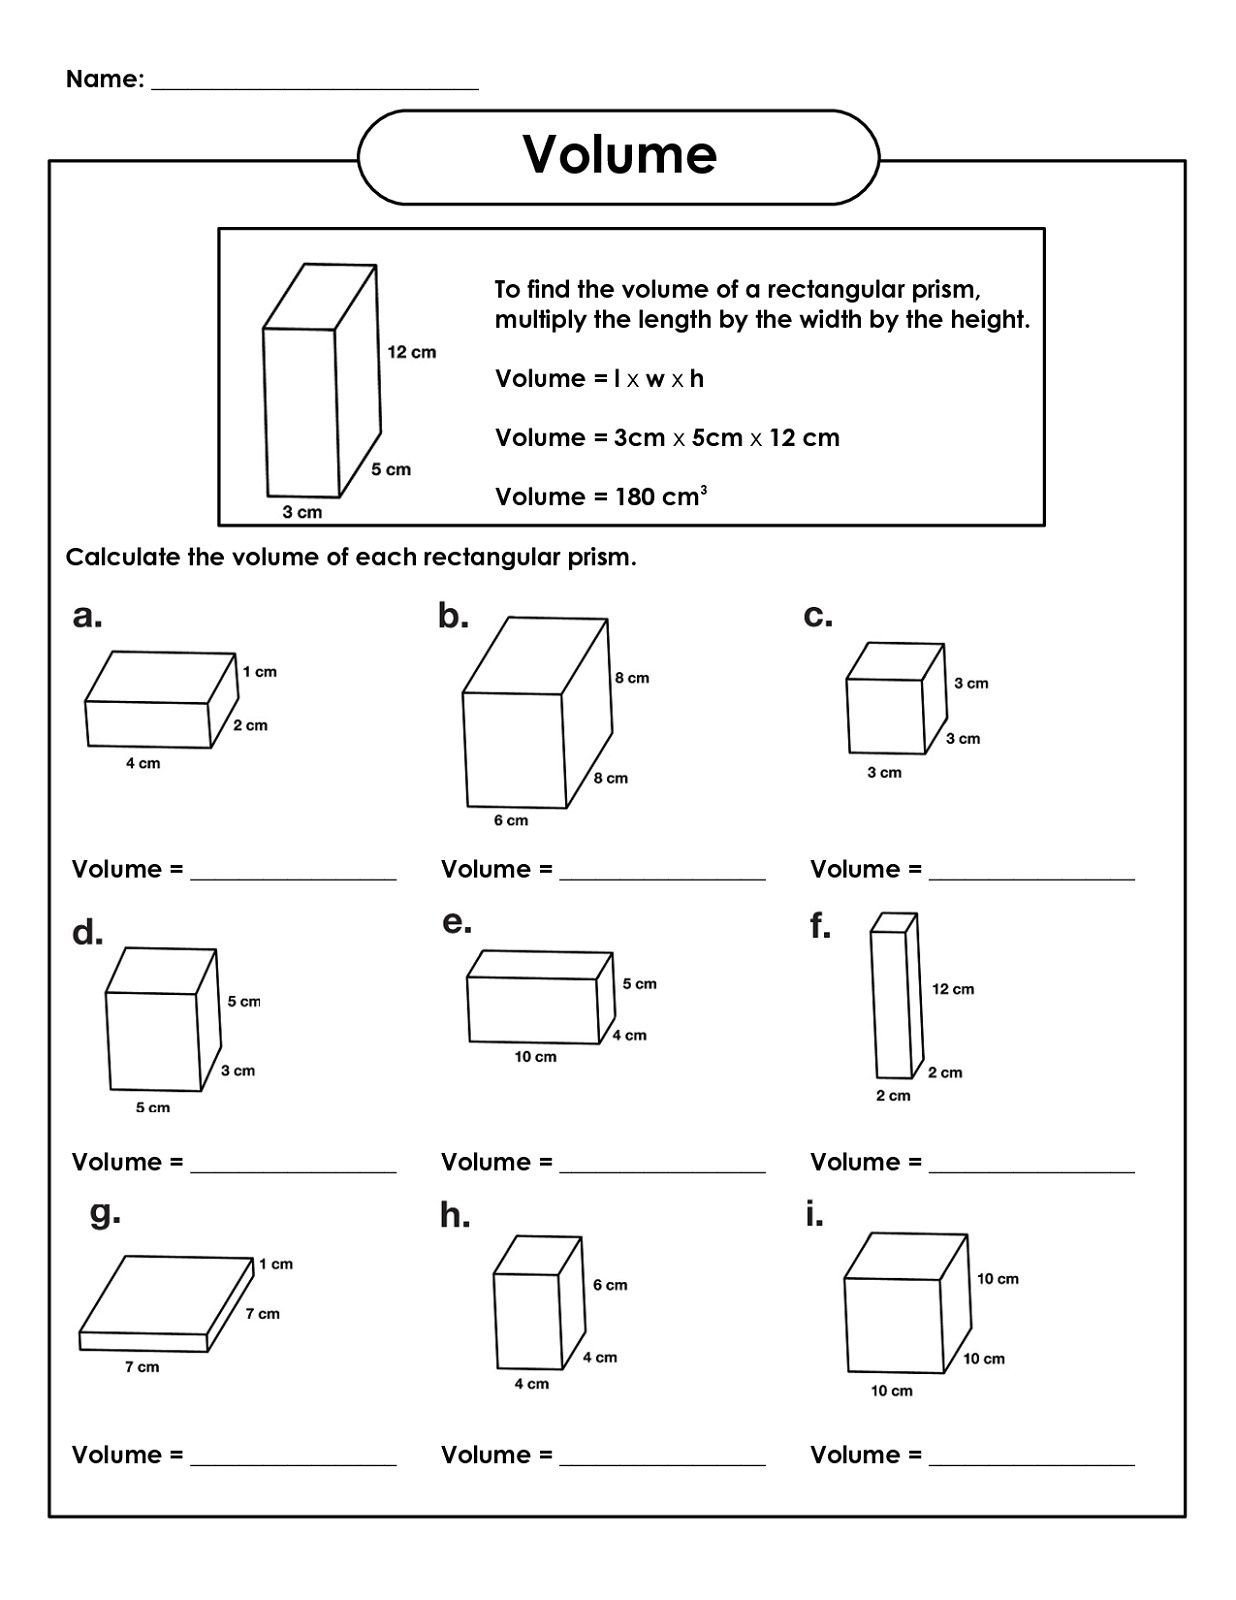 Measurement Worksheets 5th Grade Rectangular Prism Volume 5th Grade Math Worksheets